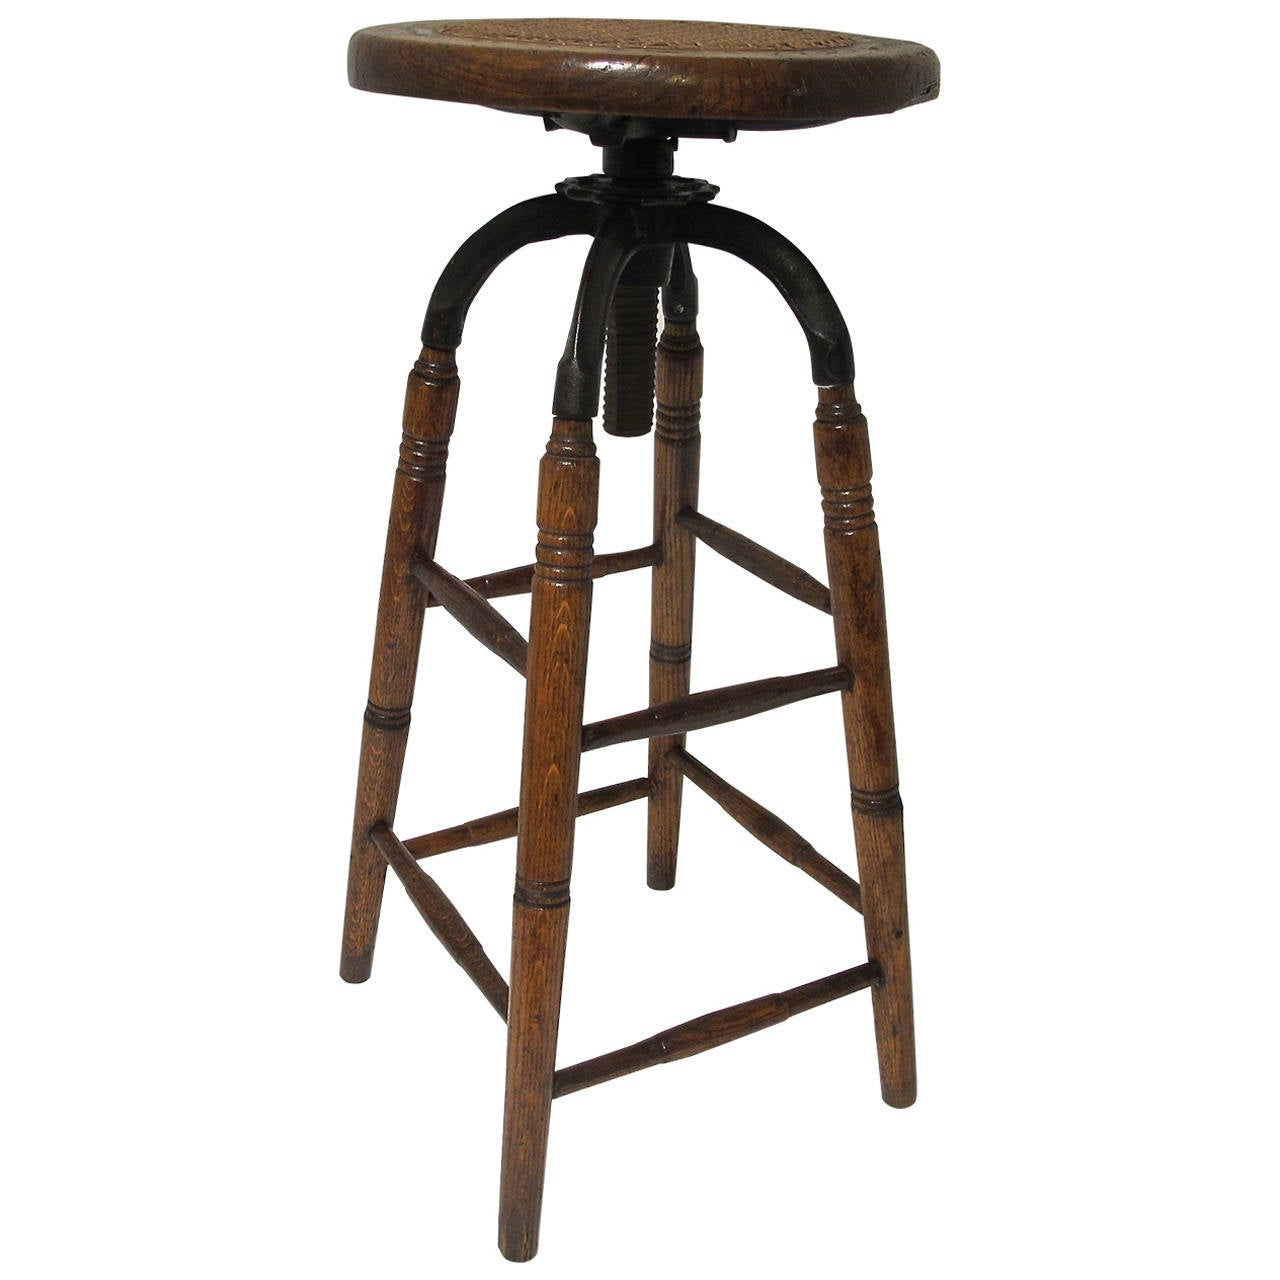 cane with chair indoor hanging swing stand oak and iron industrial stool seat at 1stdibs